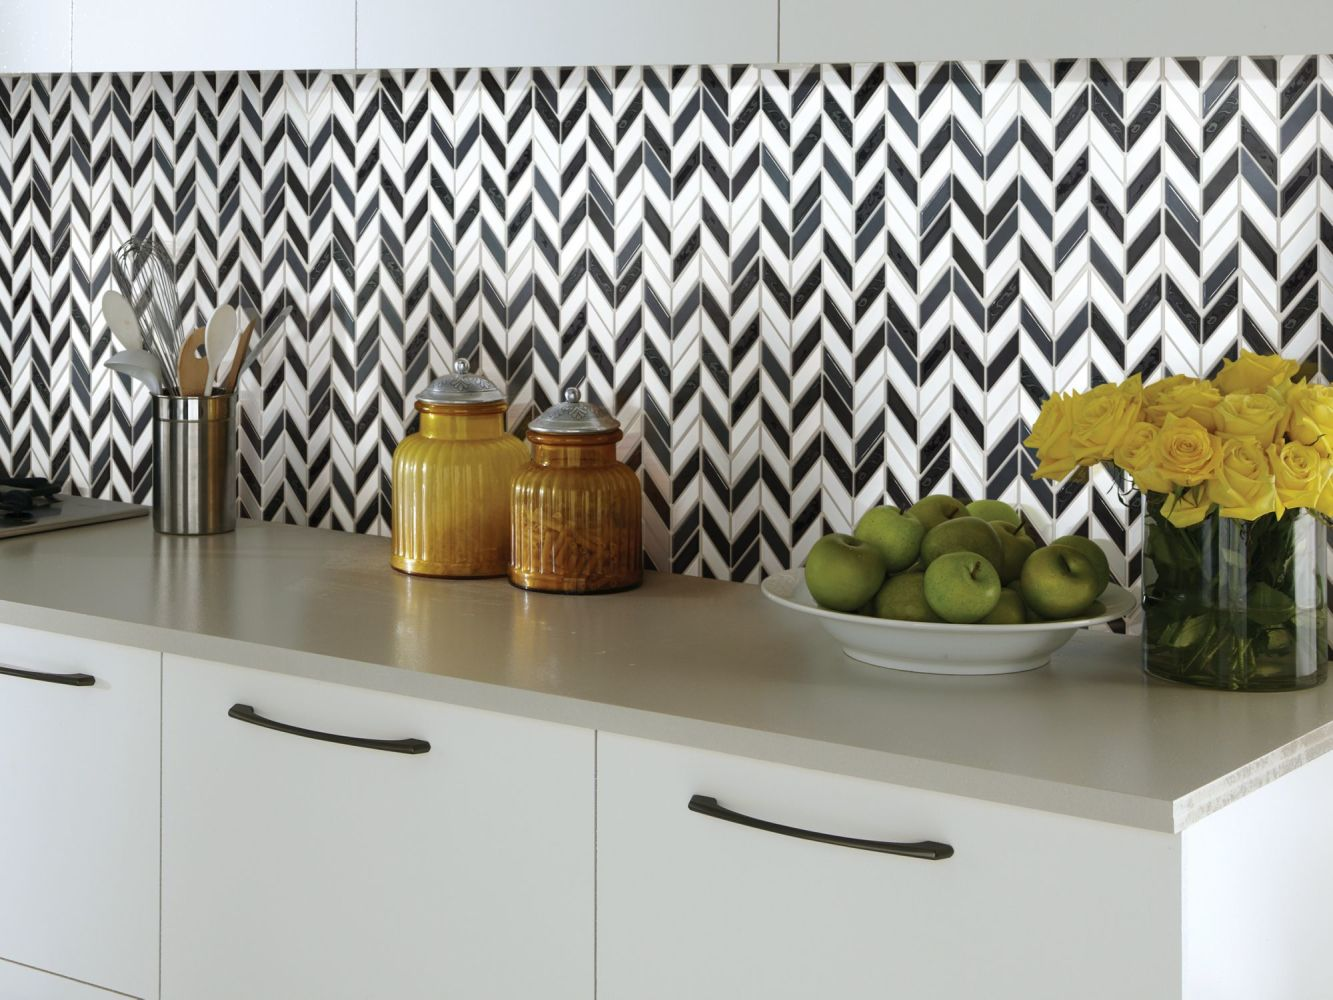 Shaw Floors Ceramic Solutions Geoscapes Chevron Black/White Blend 00151_CS46X